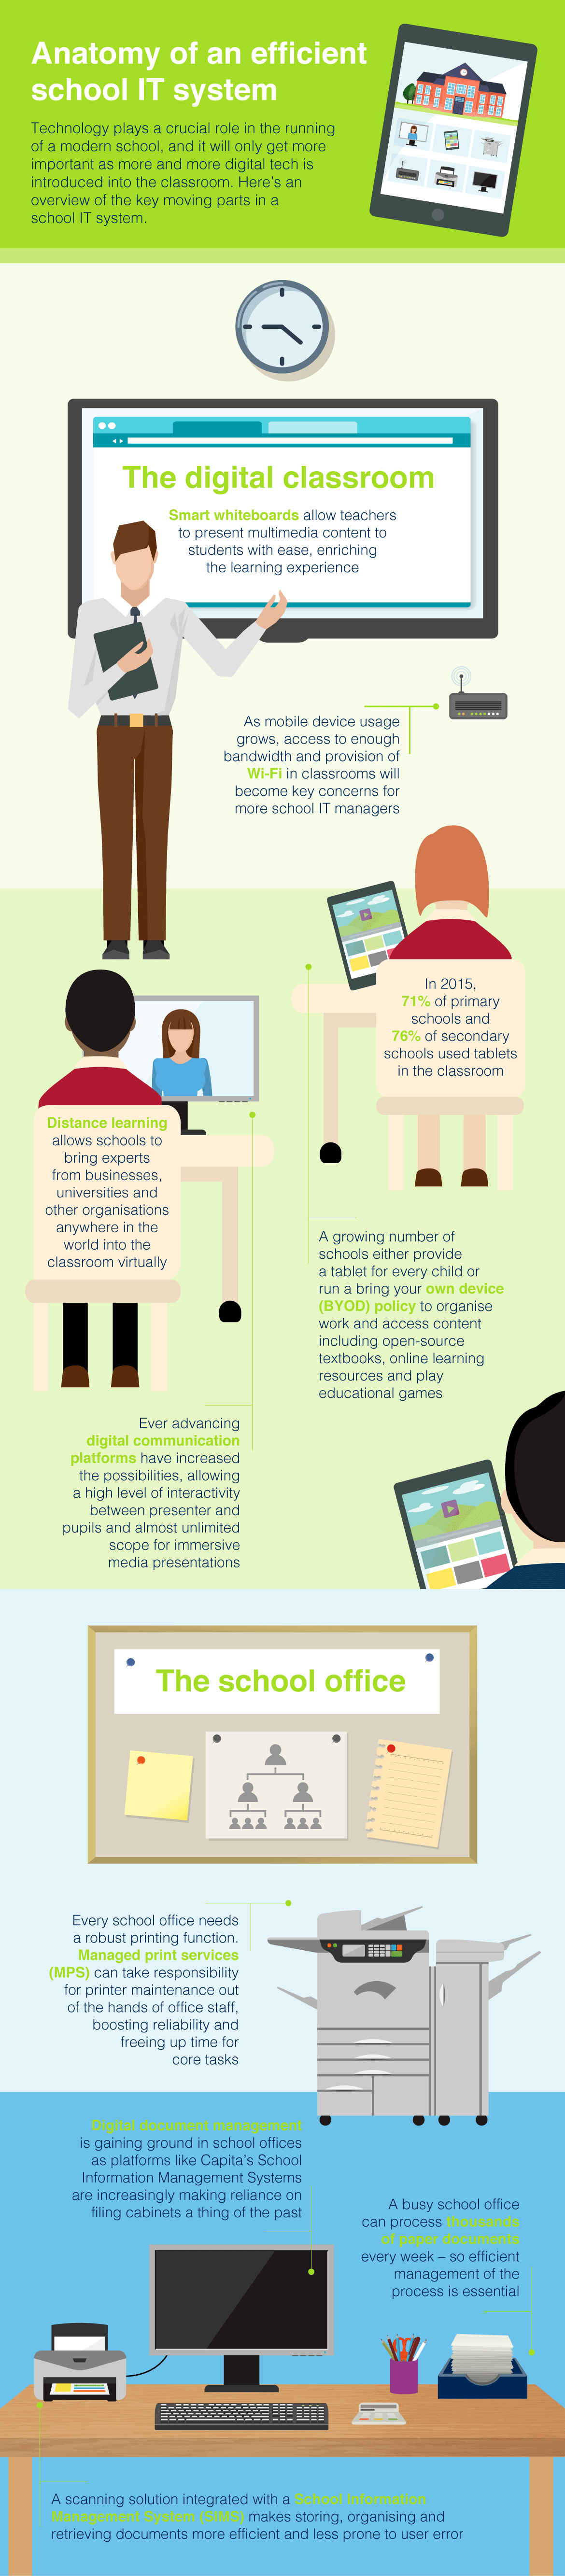 Brother education infographic showing the anatomy of a connected classroom